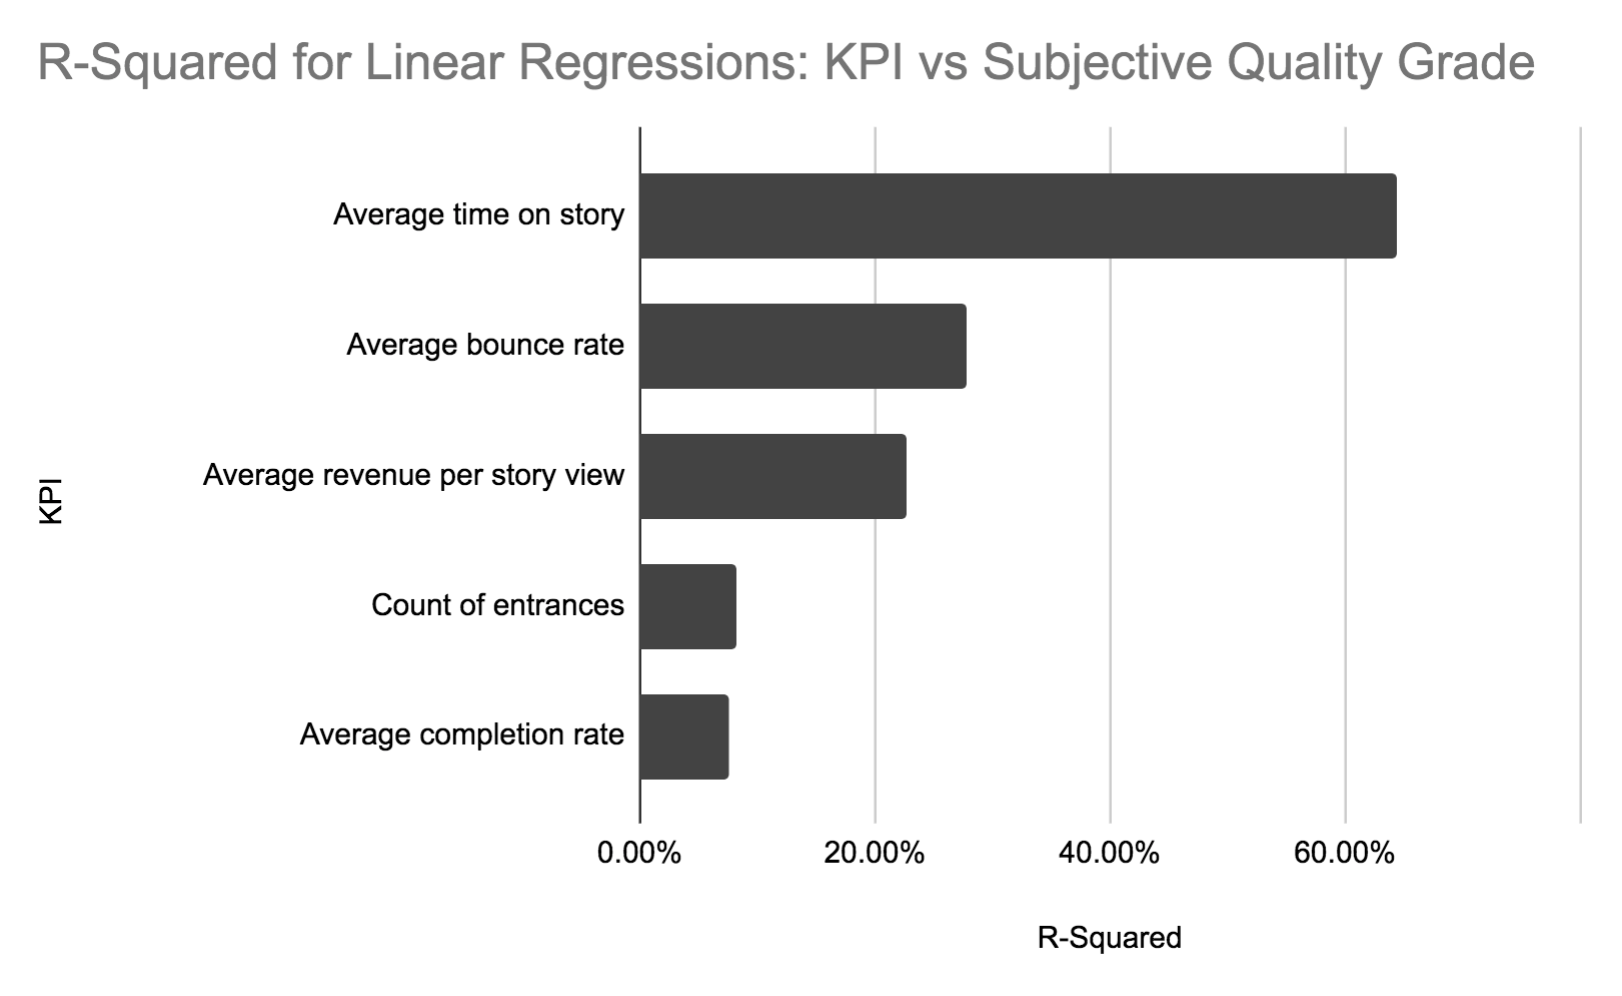 Granite Media internal study based on 40 stories published in July 2019. Values based on simple linear regressions.